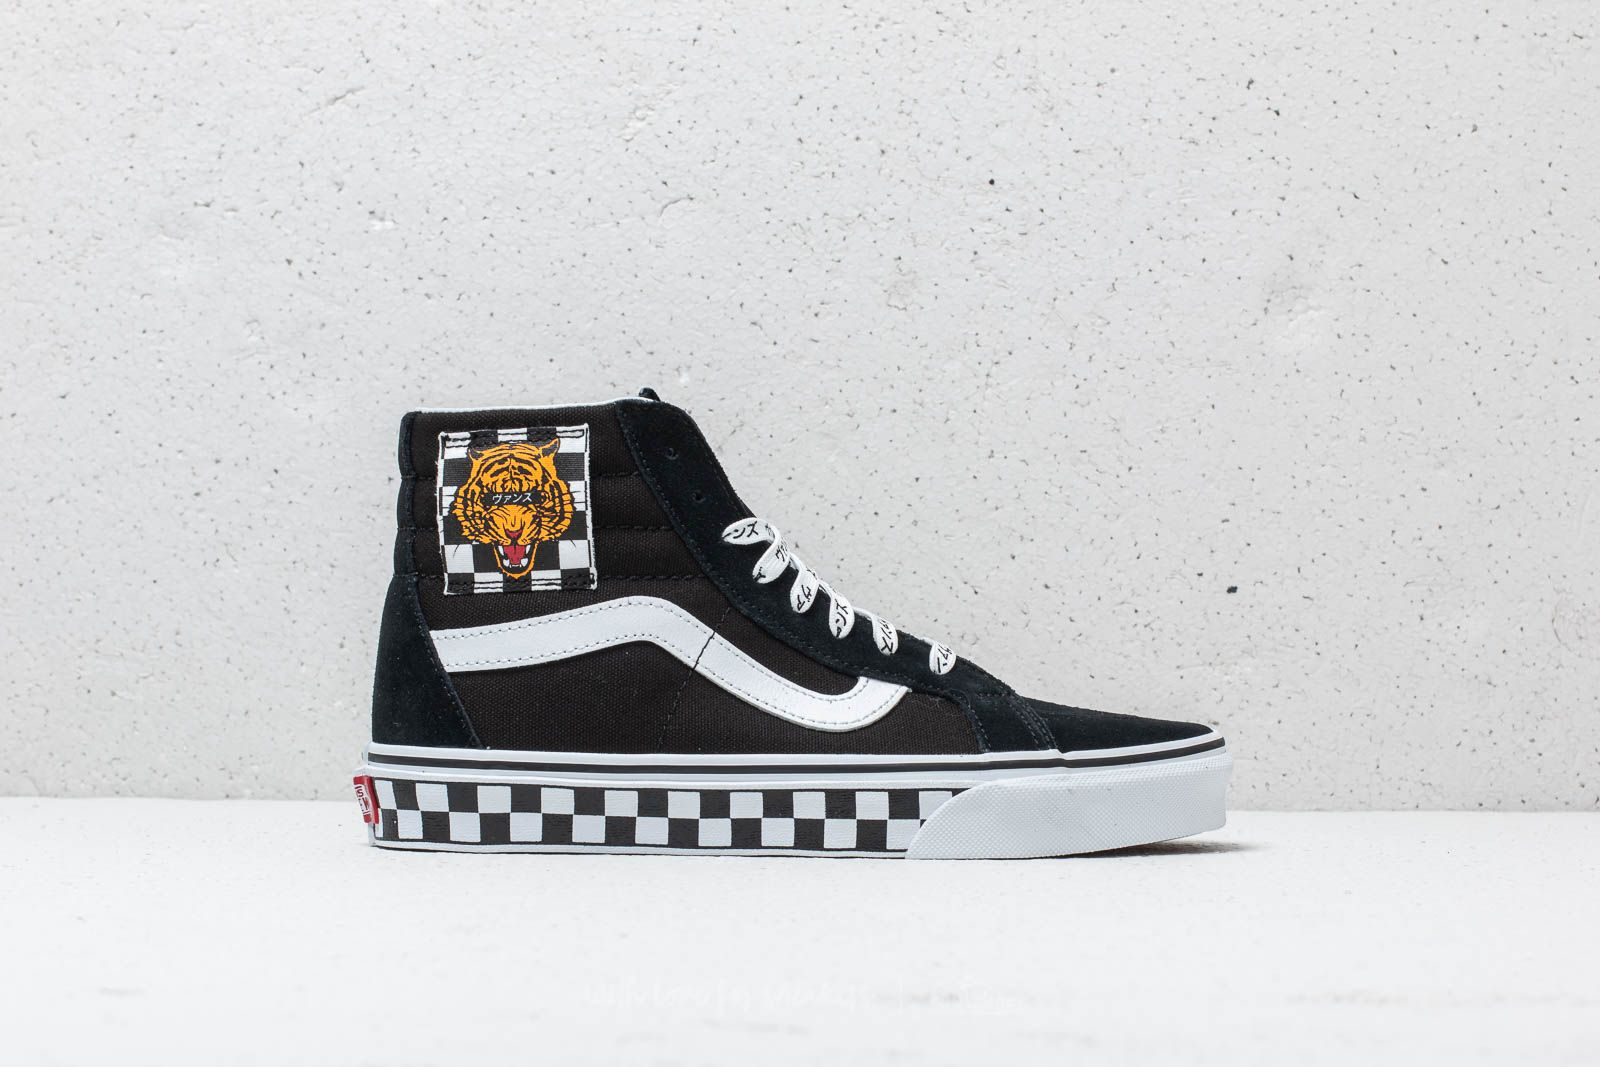 d24dd20e28e02d Vans (Tiger Check) Sk8-Hi Reissue Black  True White at a great